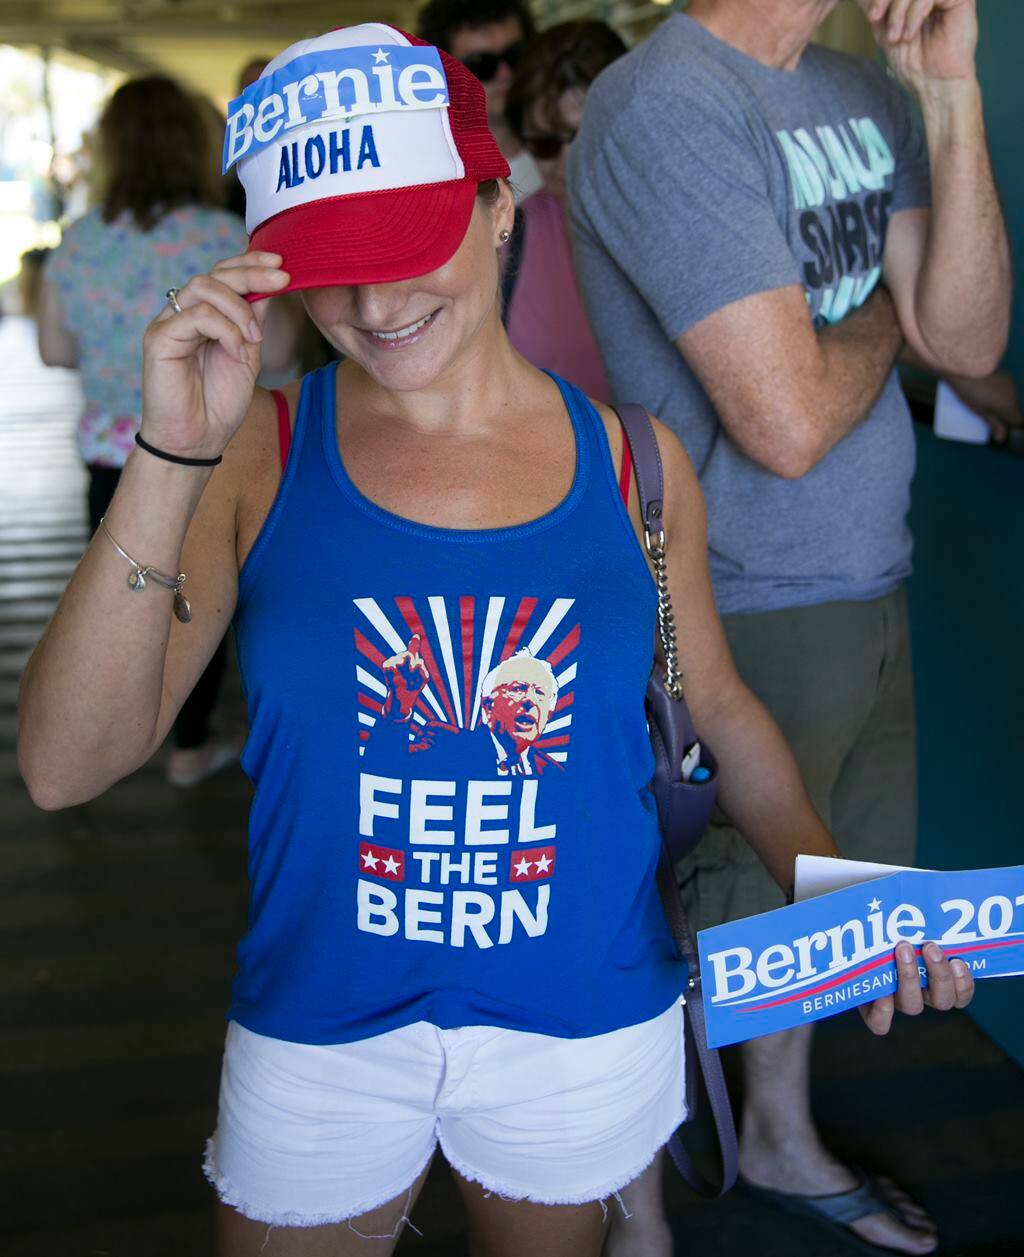 Hawaii voter Noelle Giamblvo shows off her Bernie Sanders's swag while waiting in line at the Hawaii caucus at Kailua Intermediary School, Saturday, March 26, 2016, in Kailua, Hawaii. (AP Photo/Marco Garcia)